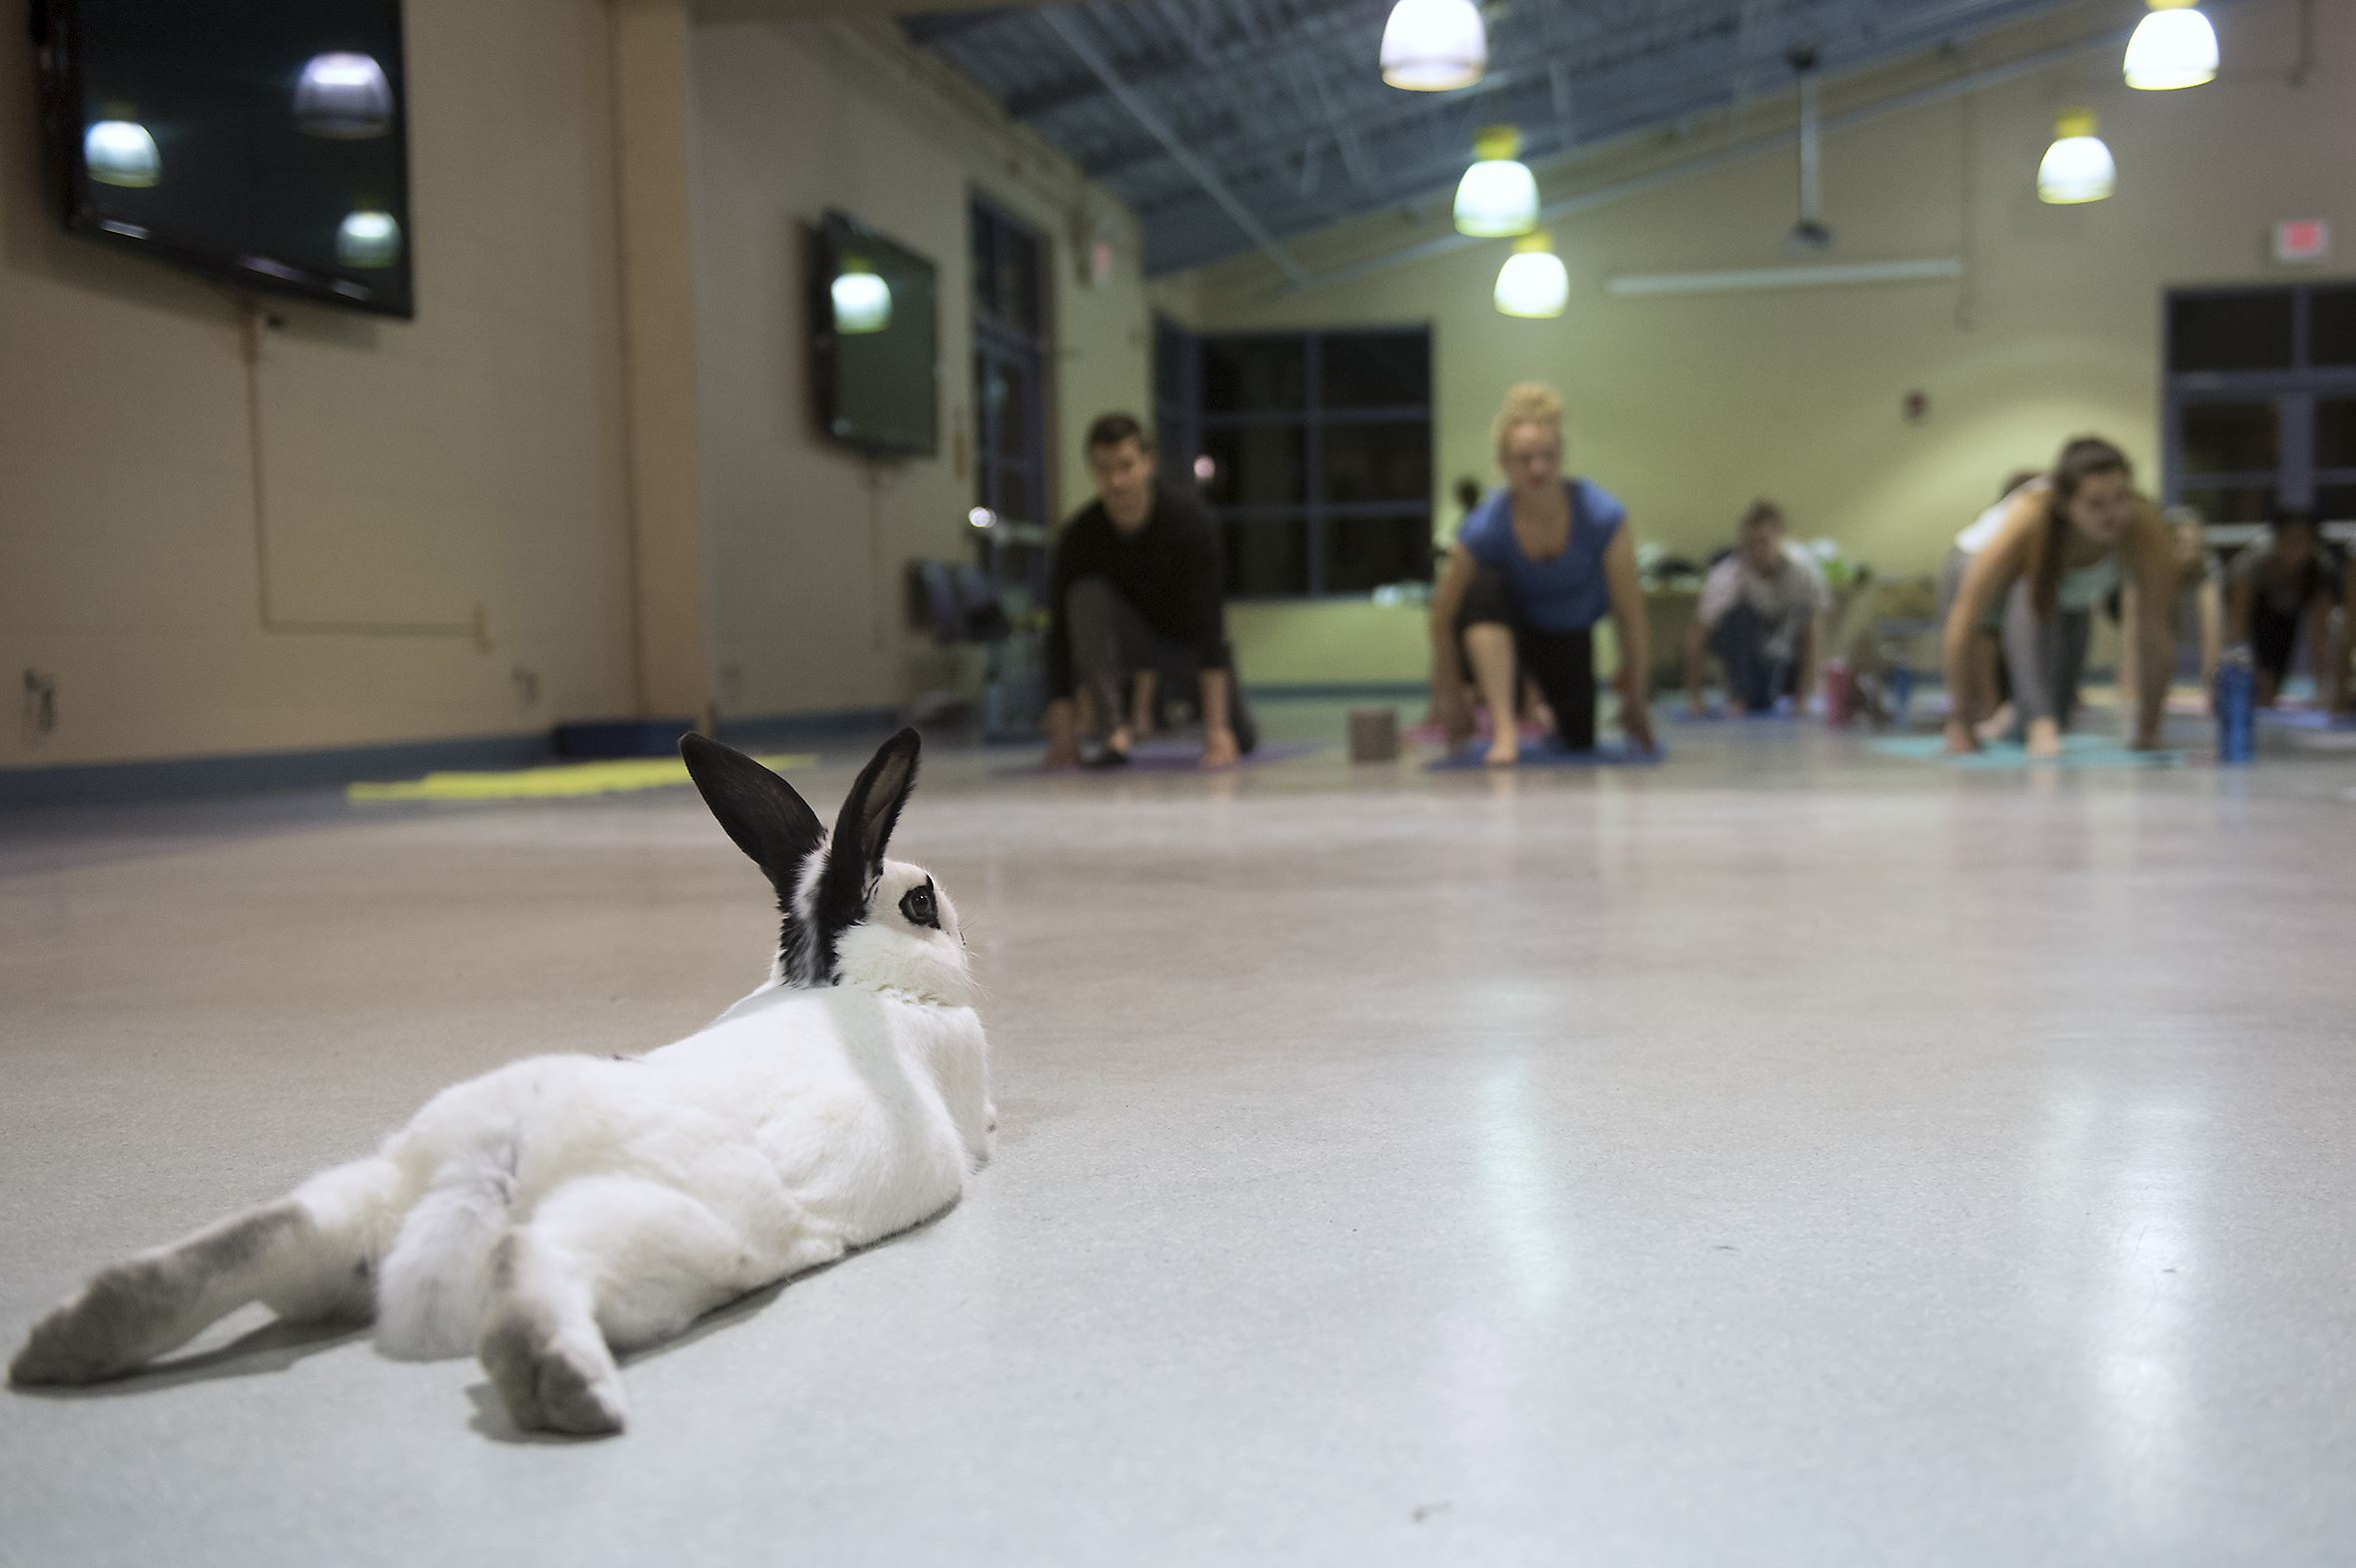 20161118hmnBunnyYoga-2-1 A rabbit stretches at a safe distance from human participants at a Bunny Yoga class at Animal Friends in Ohio Township.